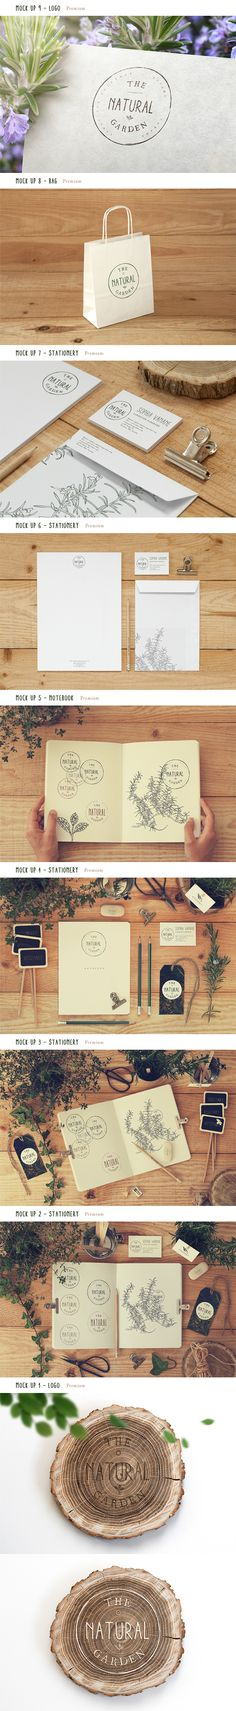 Collection 14 - Free & Premium Mock Ups by Qeaql ., via Behance